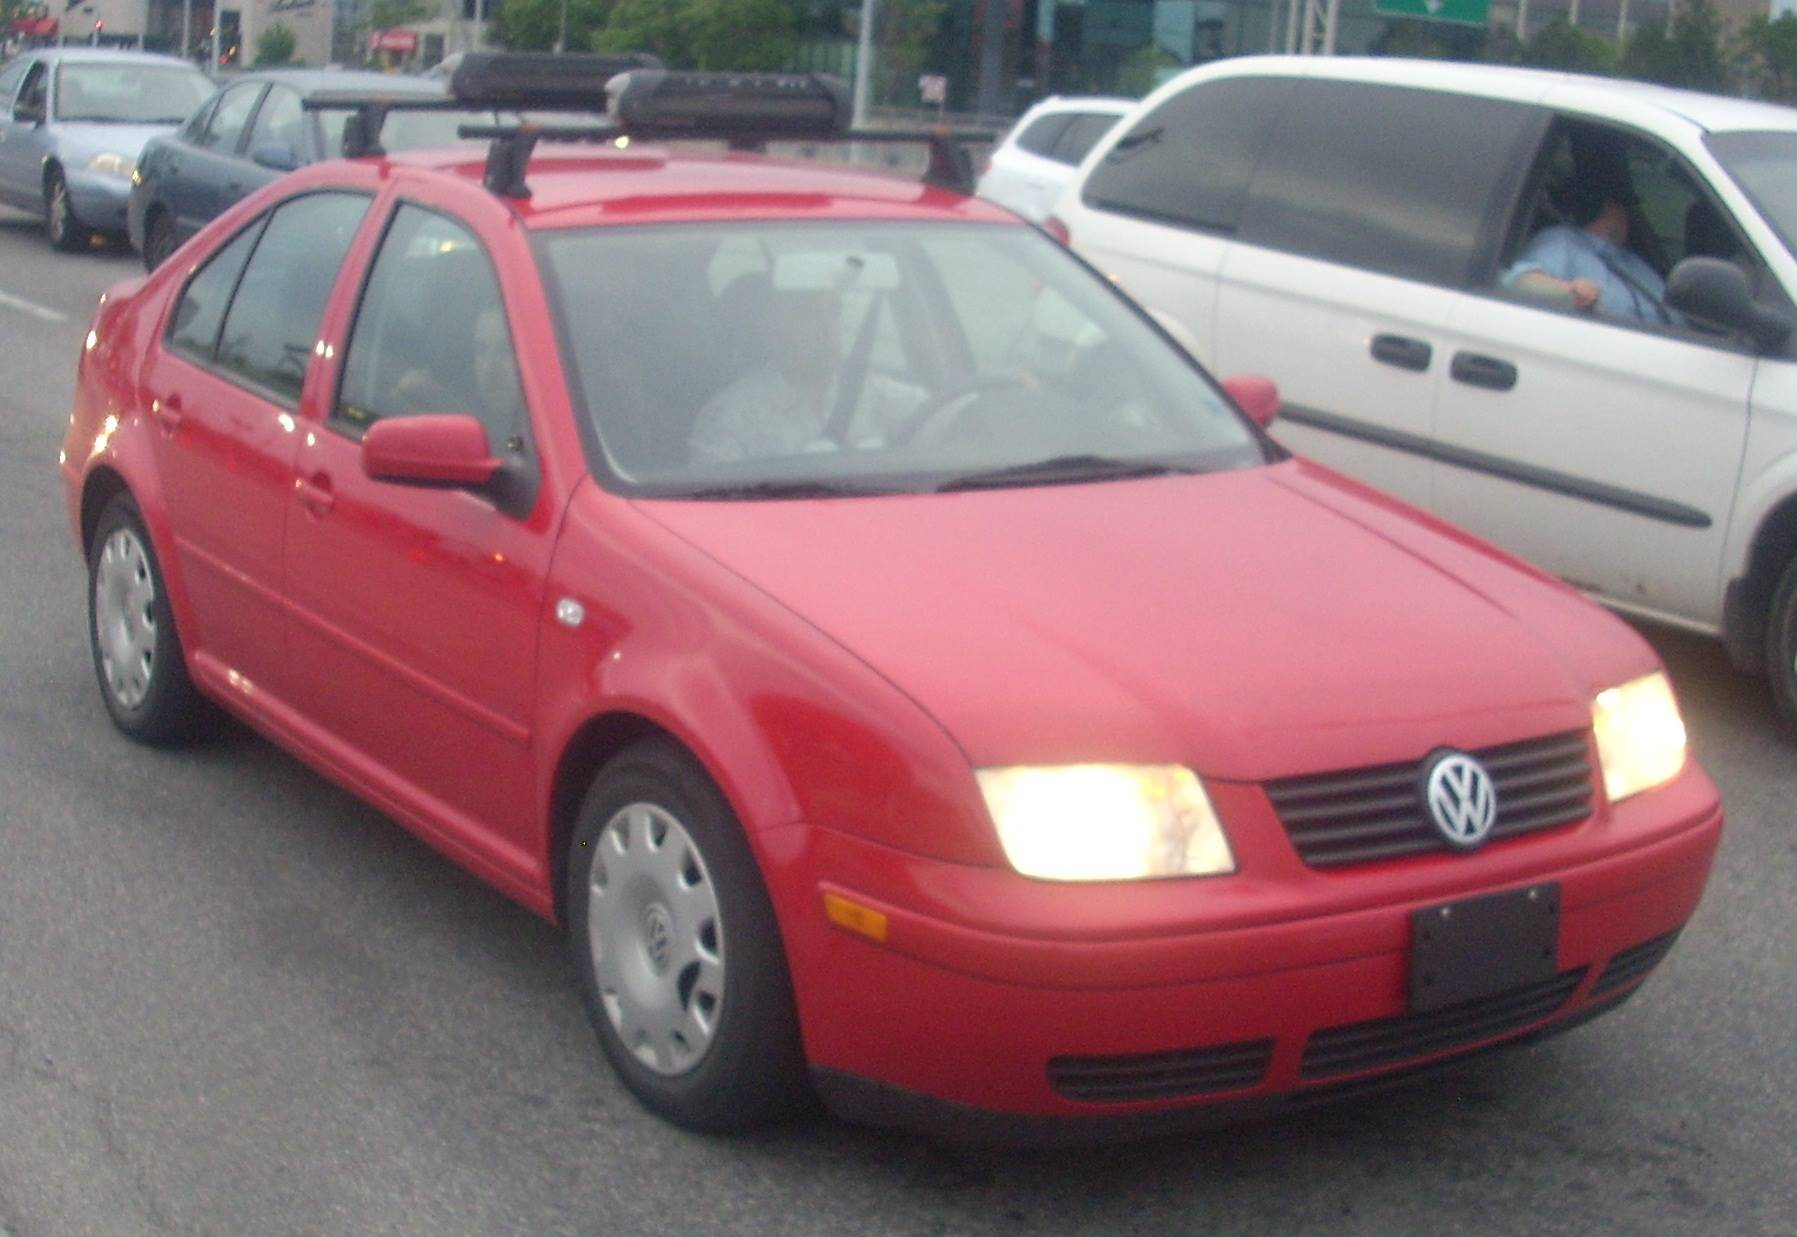 2003 Volkswagen Jetta Gl Tdi Wagon 1 9l Turbo Diesel Manual